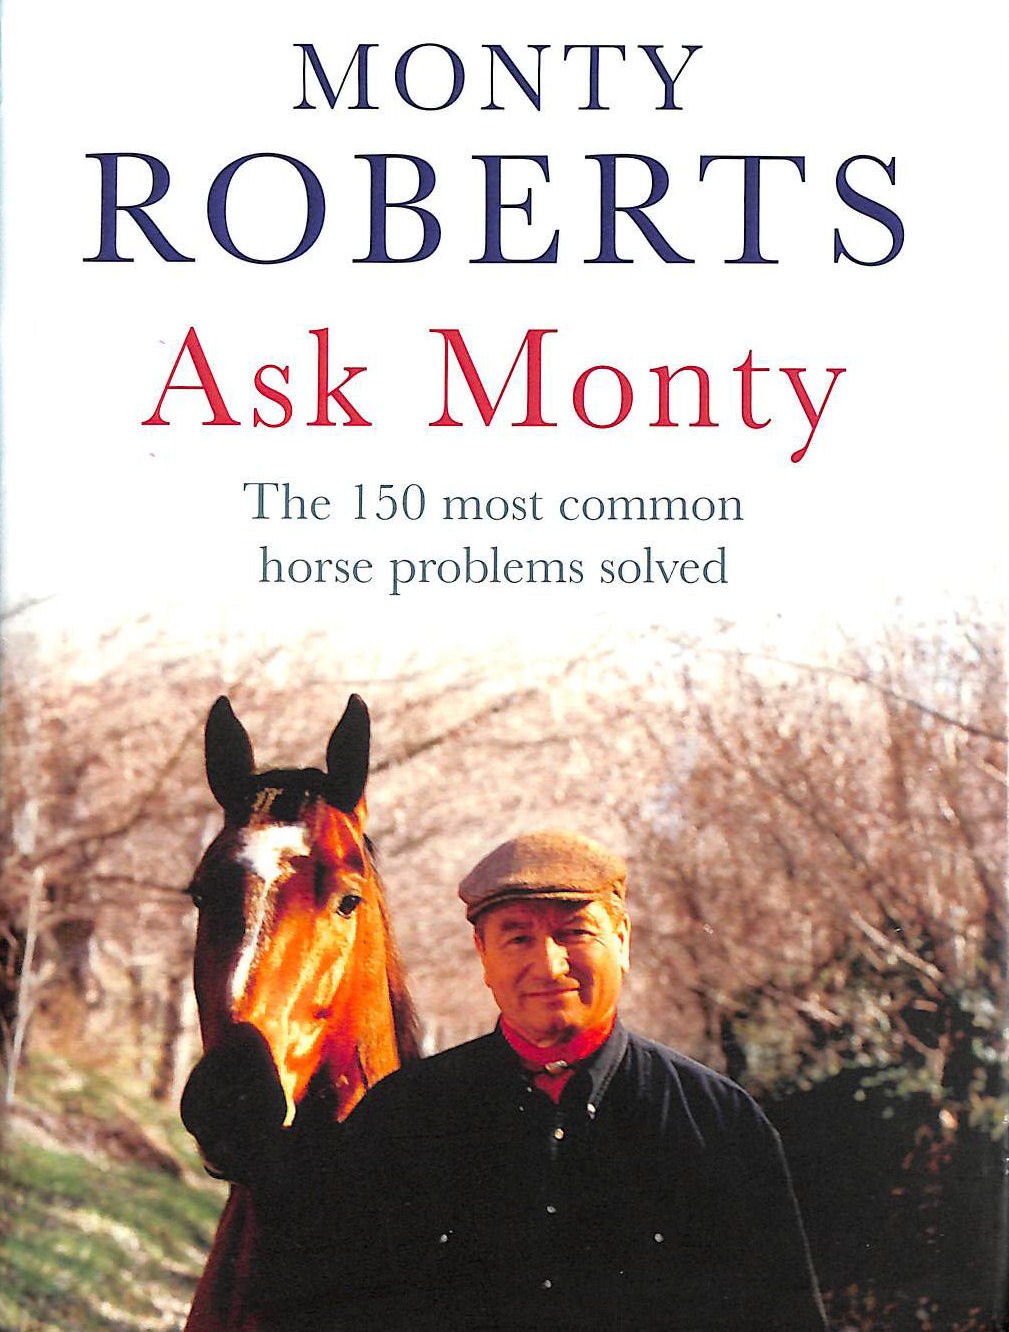 Image for Ask Monty: The 170 most common horse problems solved: The 150 Most Common Horse Problems Solved